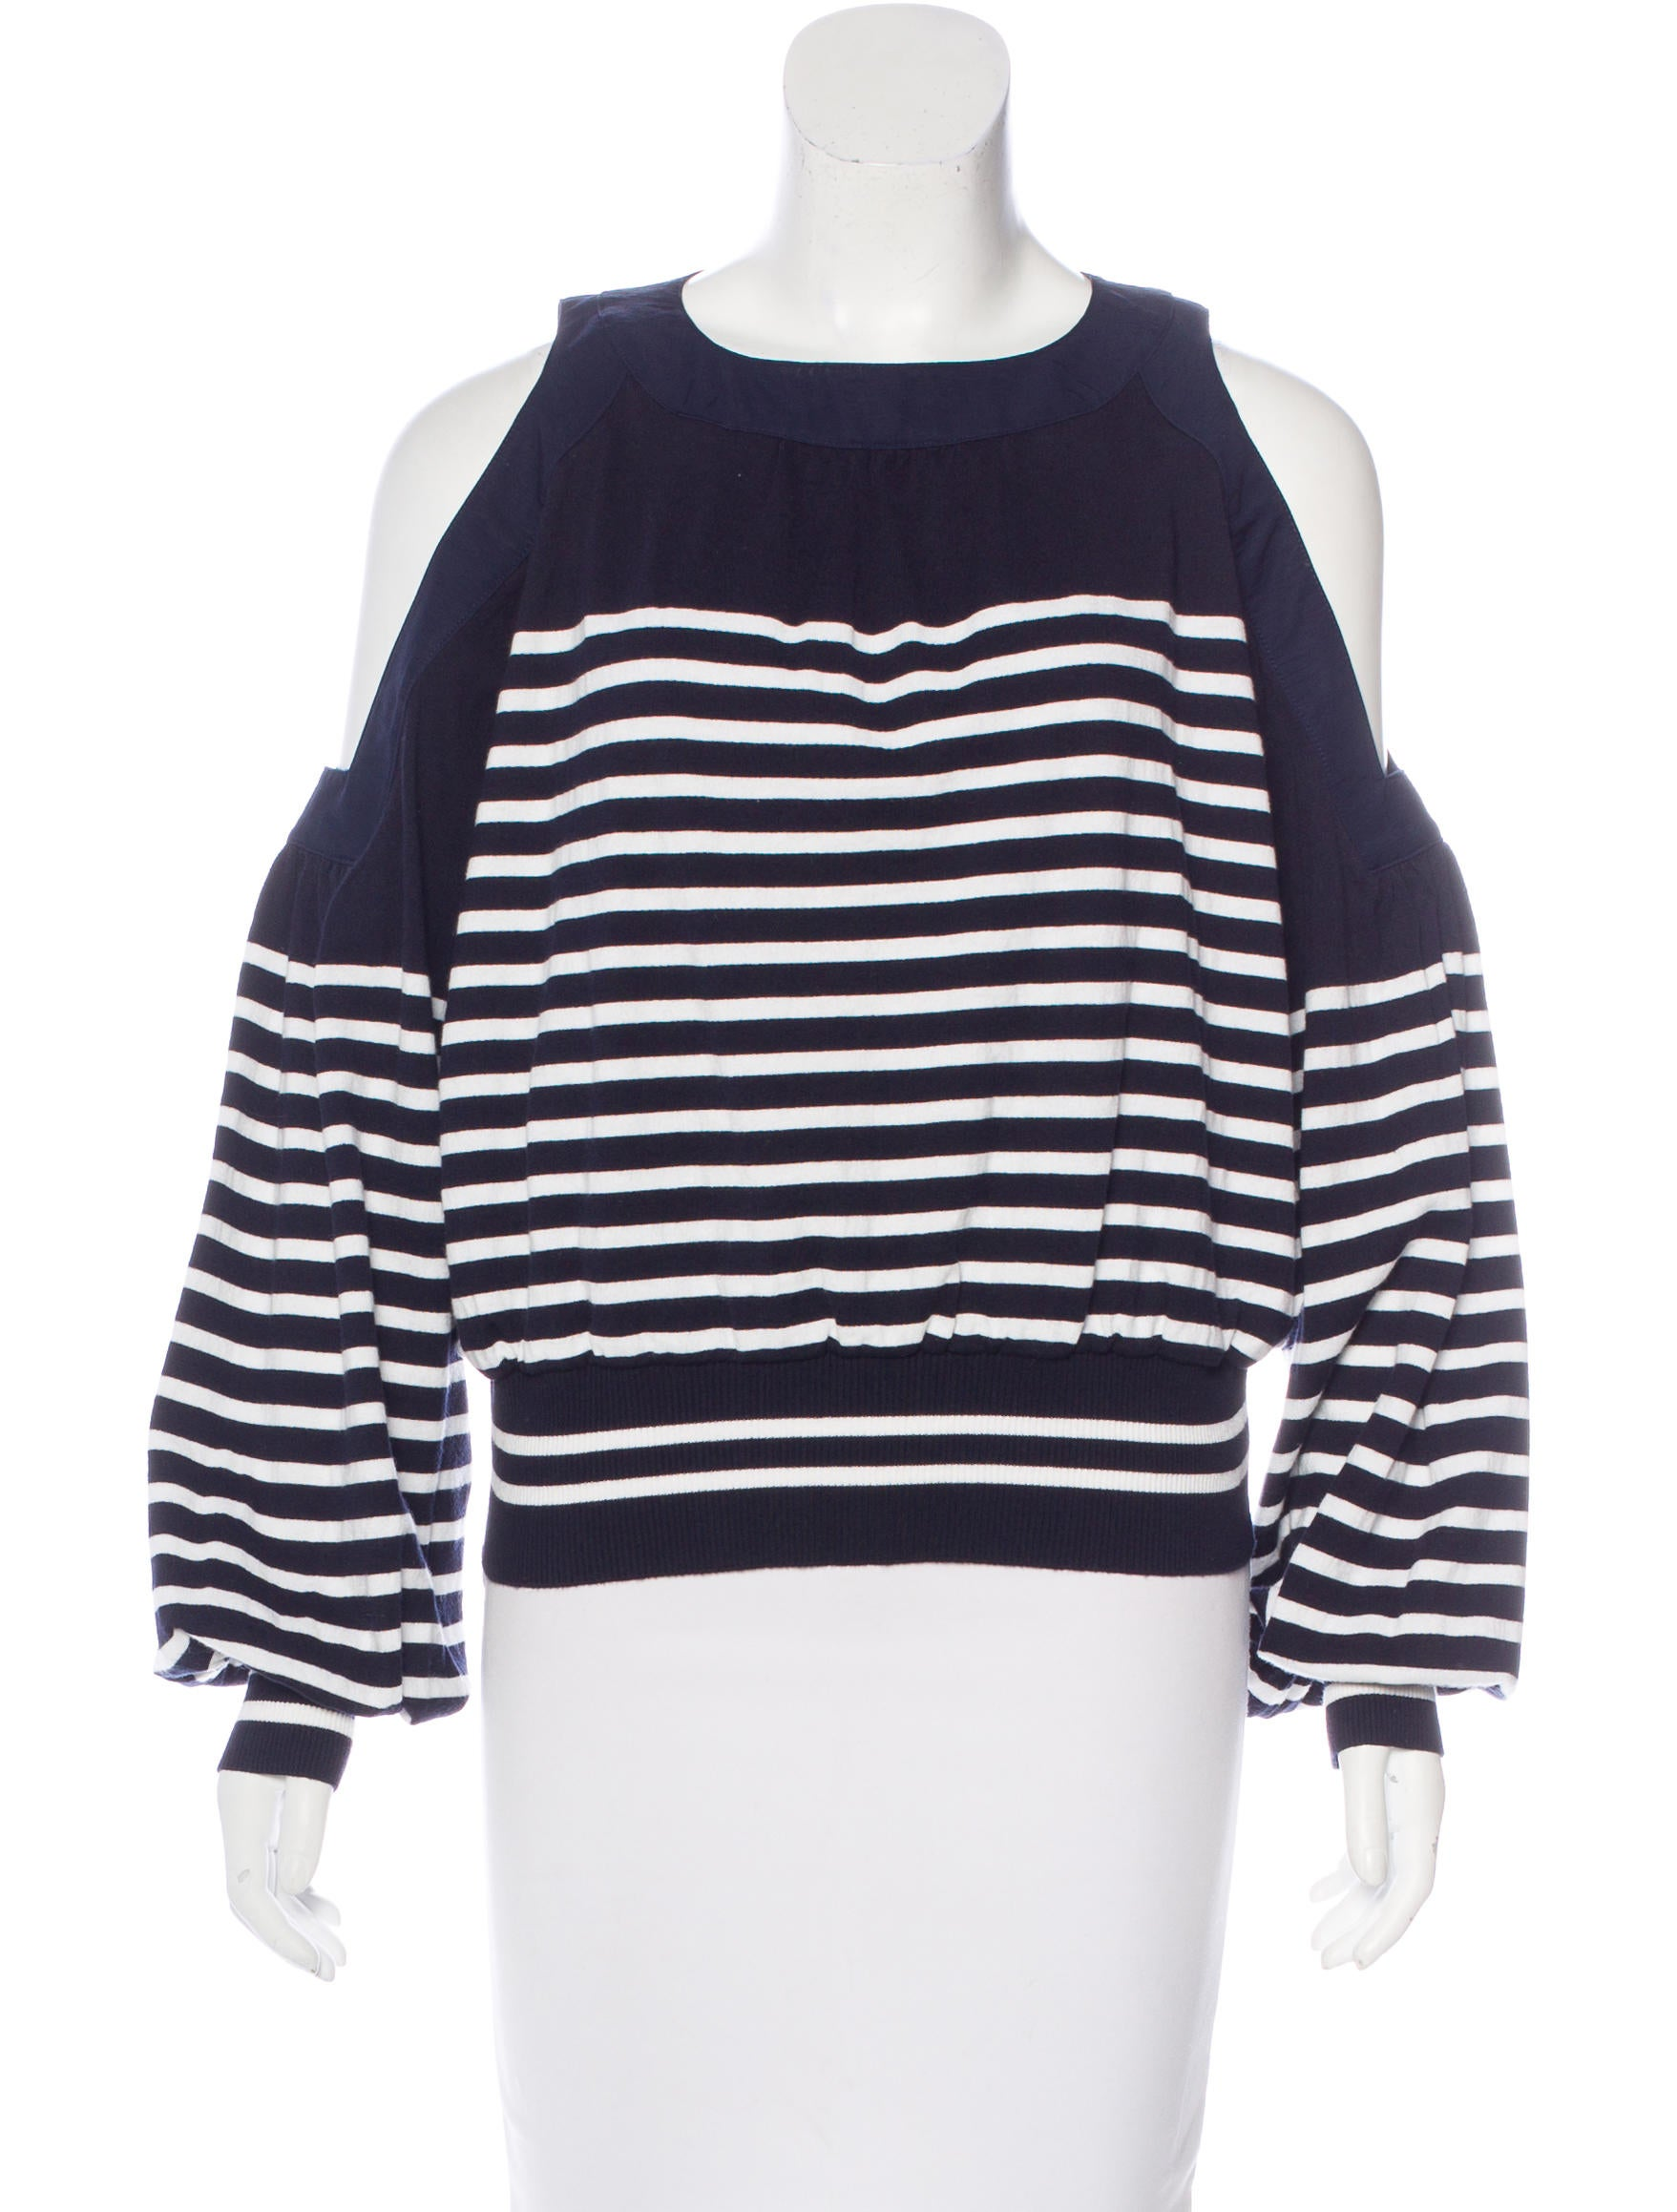 0dc9be0423217 Sacai Striped Cold-Shoulder Top w  Tags - Clothing - WS121616